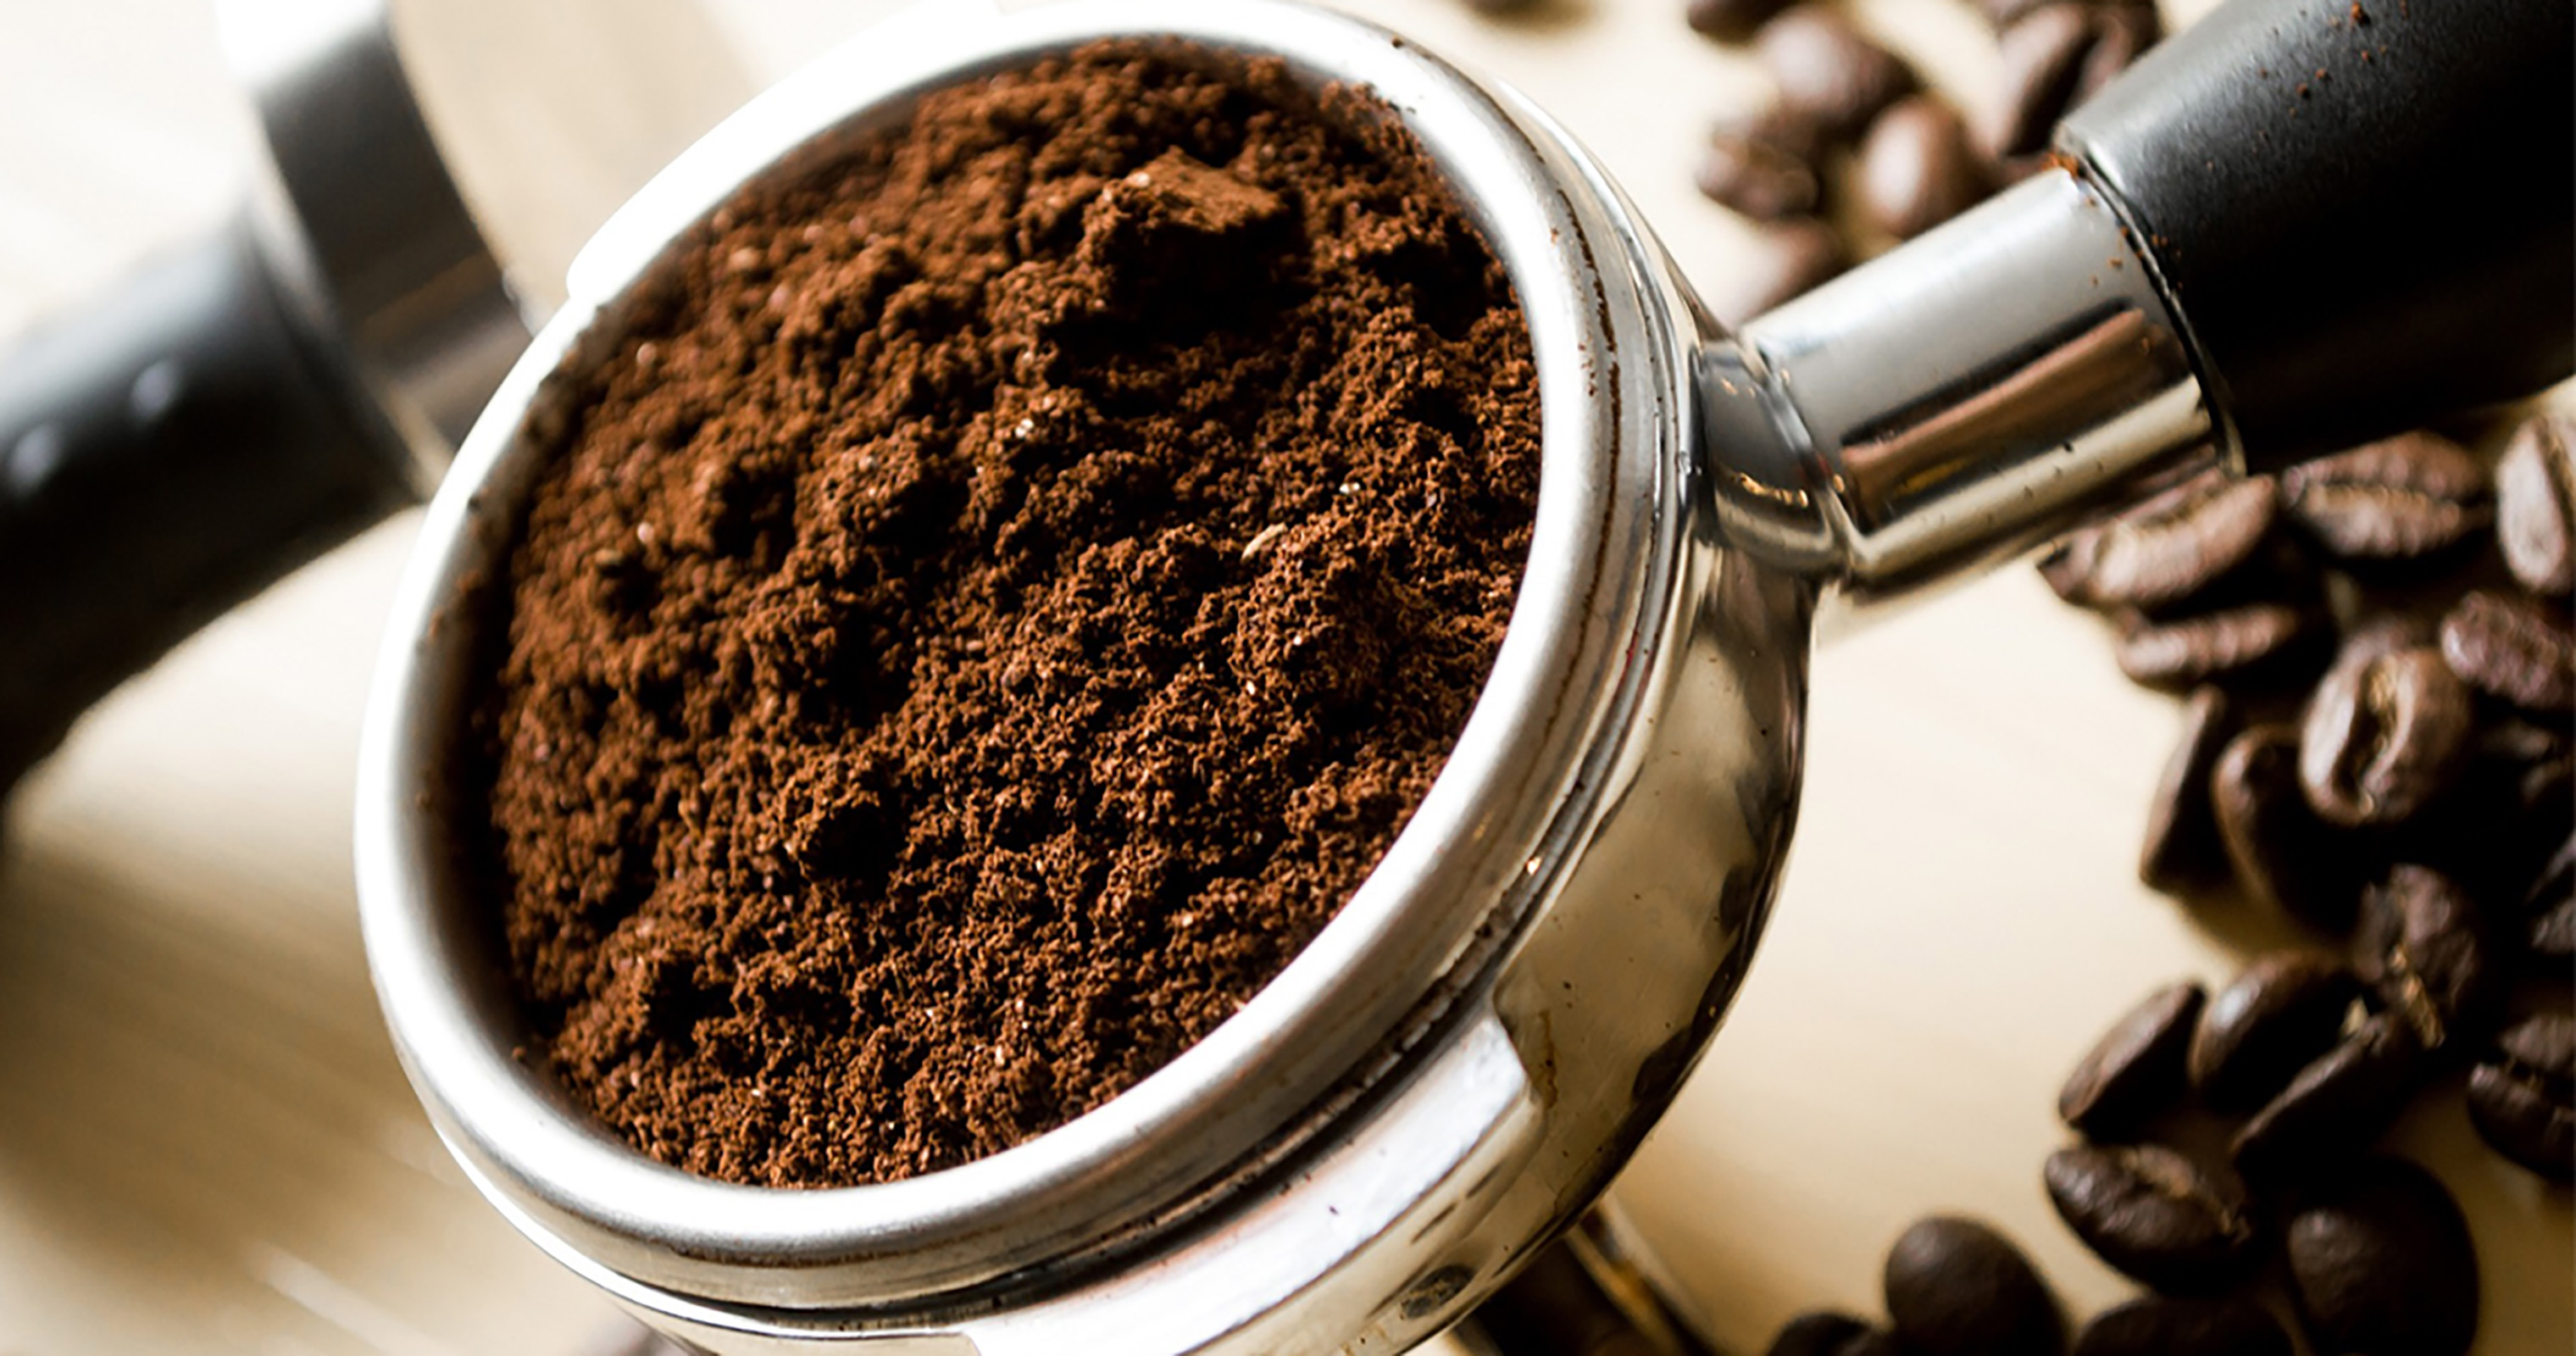 How to Choose a Coffee Maker? 3 Great Tips to Find the Best One for You (